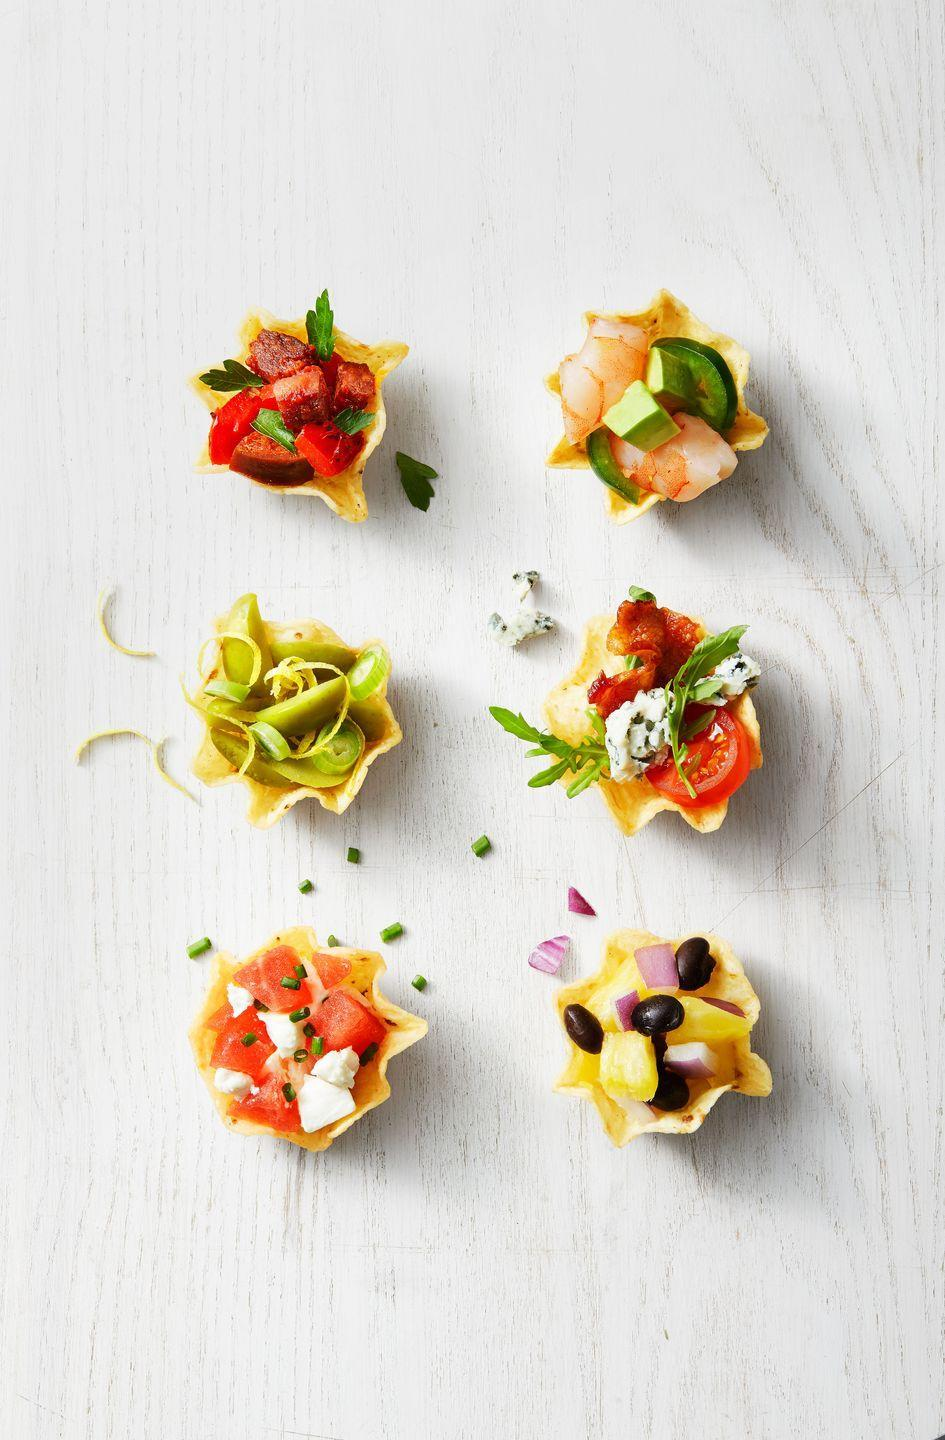 """<p>This no-bake snack features tons of topping combo ideas for tortilla chip cups. So easy.</p><p><em><a href=""""https://www.goodhousekeeping.com/food-recipes/a35191279/stuffed-tortilla-cups-recipe/"""" rel=""""nofollow noopener"""" target=""""_blank"""" data-ylk=""""slk:Get the recipe for Stuffed Tortilla Cups »"""" class=""""link rapid-noclick-resp"""">Get the recipe for Stuffed Tortilla Cups »</a></em></p>"""